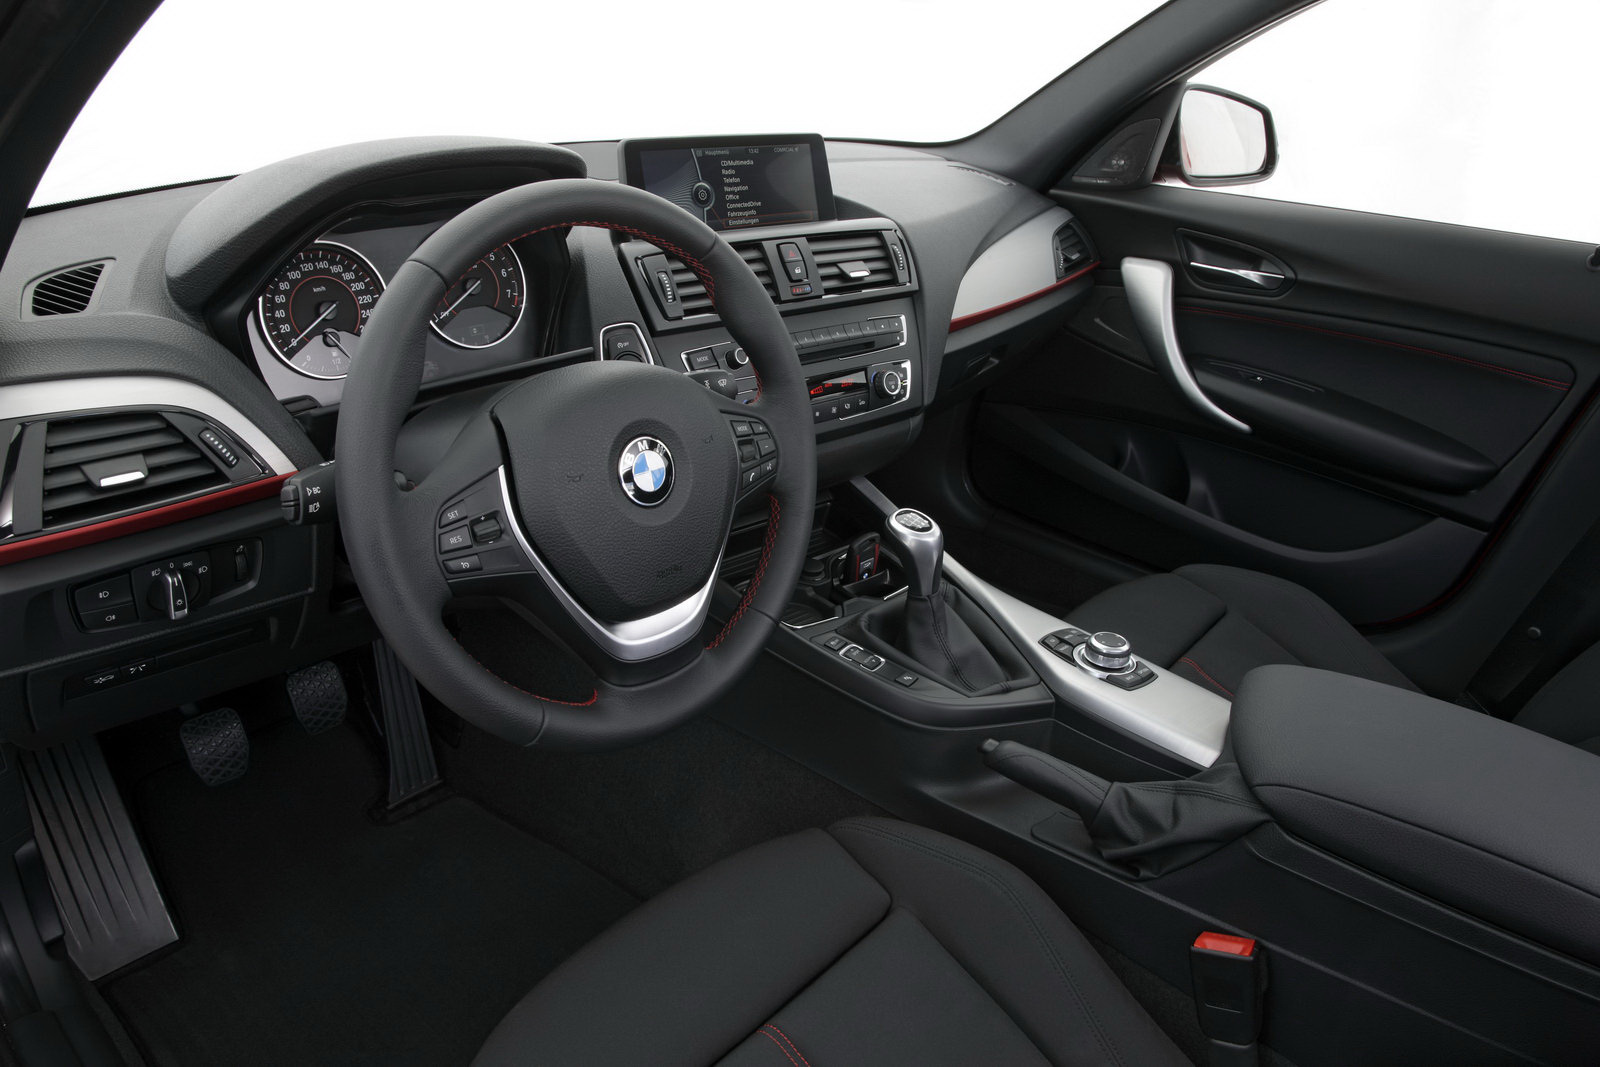 2012 bmw 1 series f20 interior 10 for Interieur serie 1